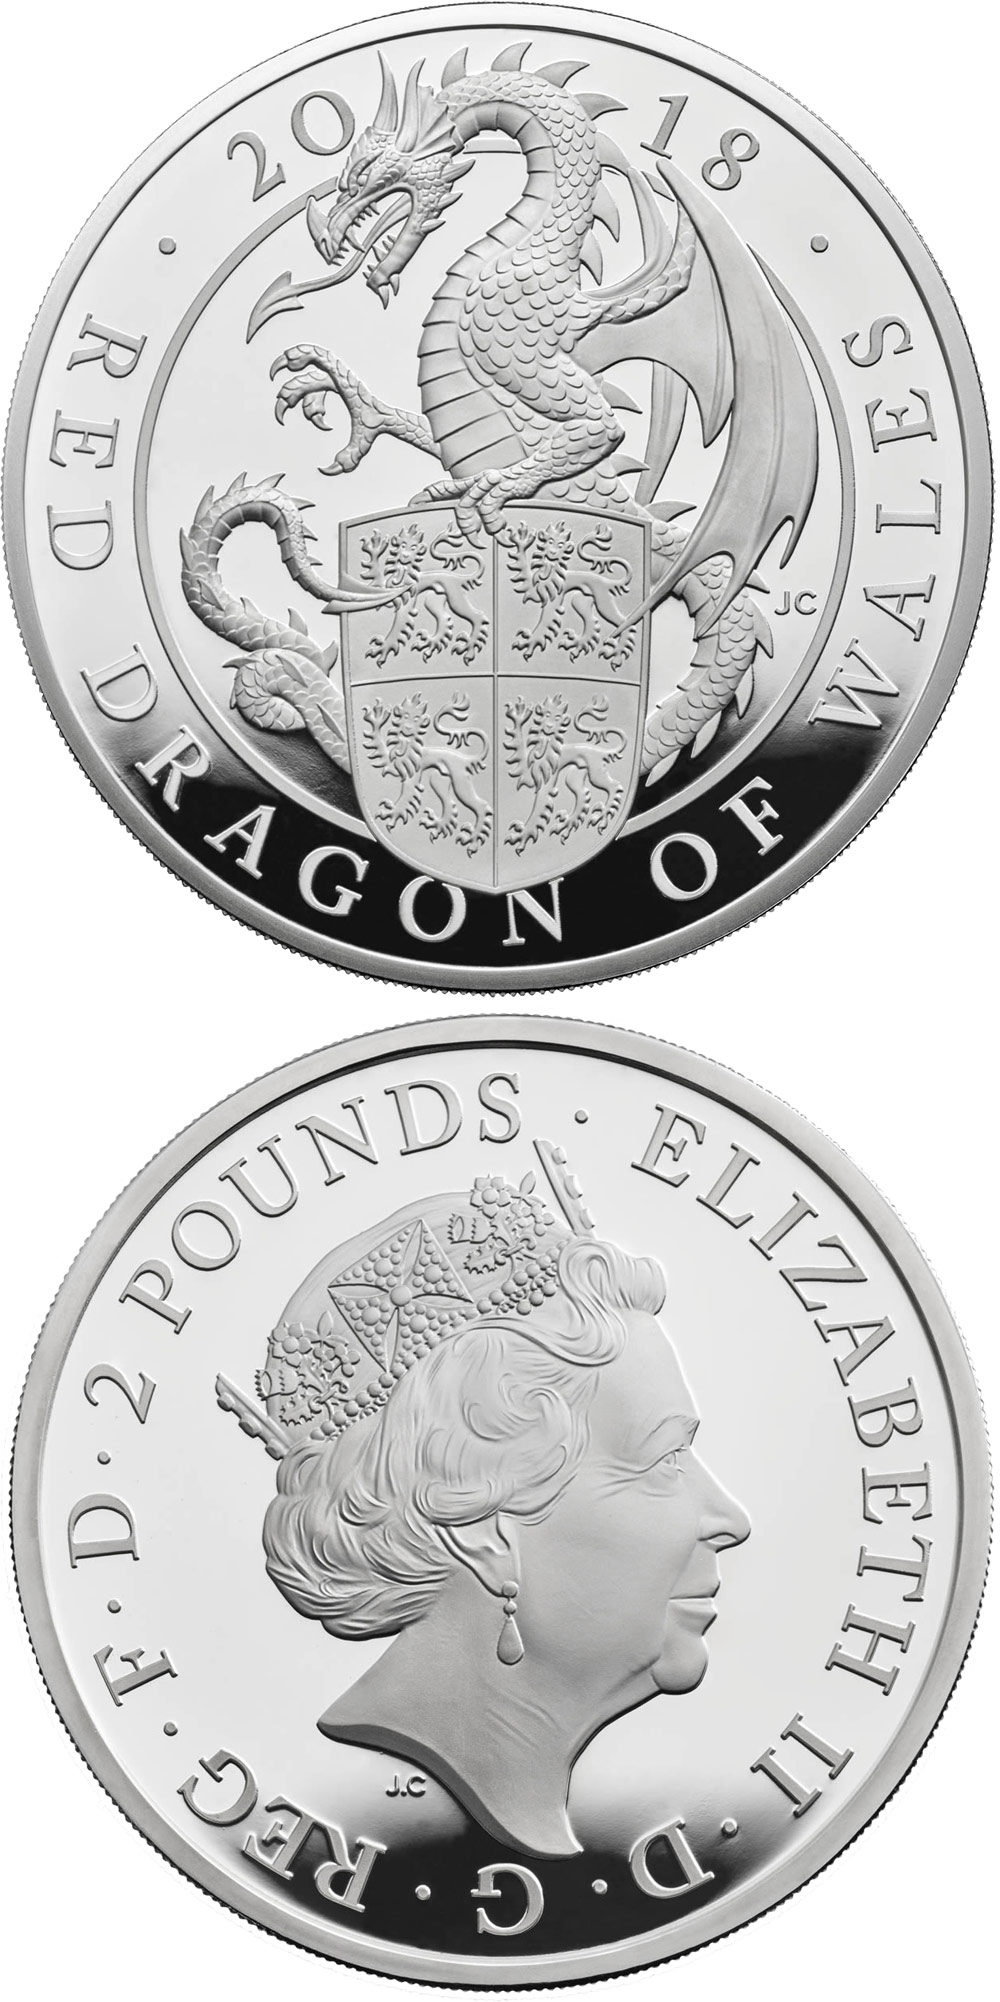 Image of 2 pounds coin – The Red Dragon of Wales | United Kingdom 2018.  The Silver coin is of Proof quality.